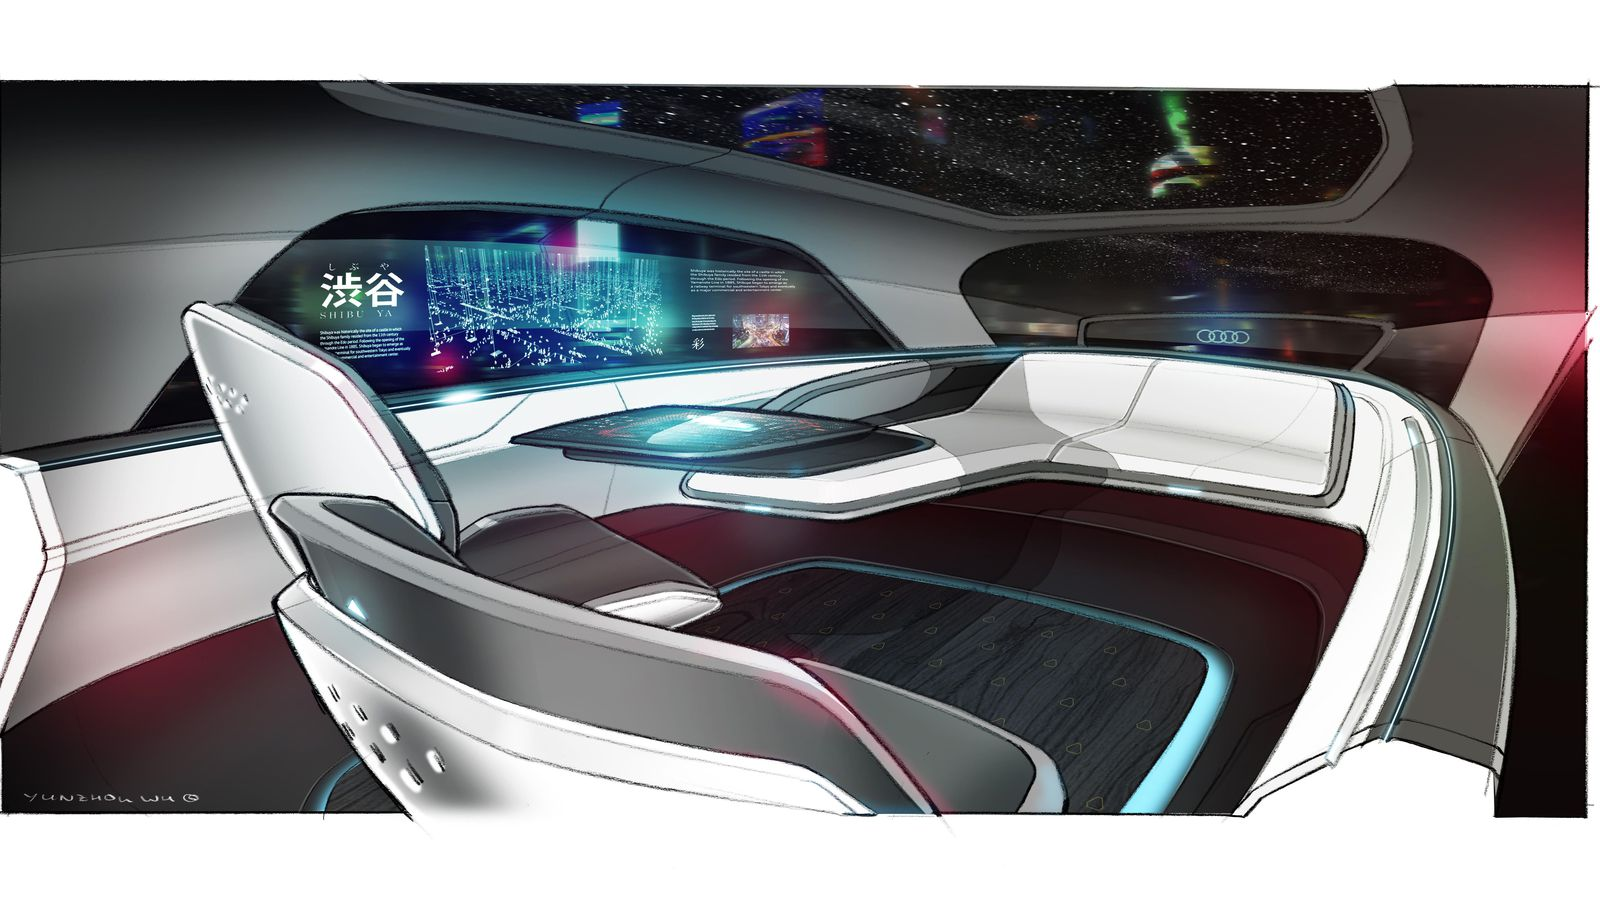 Audi Unveils A Future Without Cars Fanatical Futurist By - Audi future cars